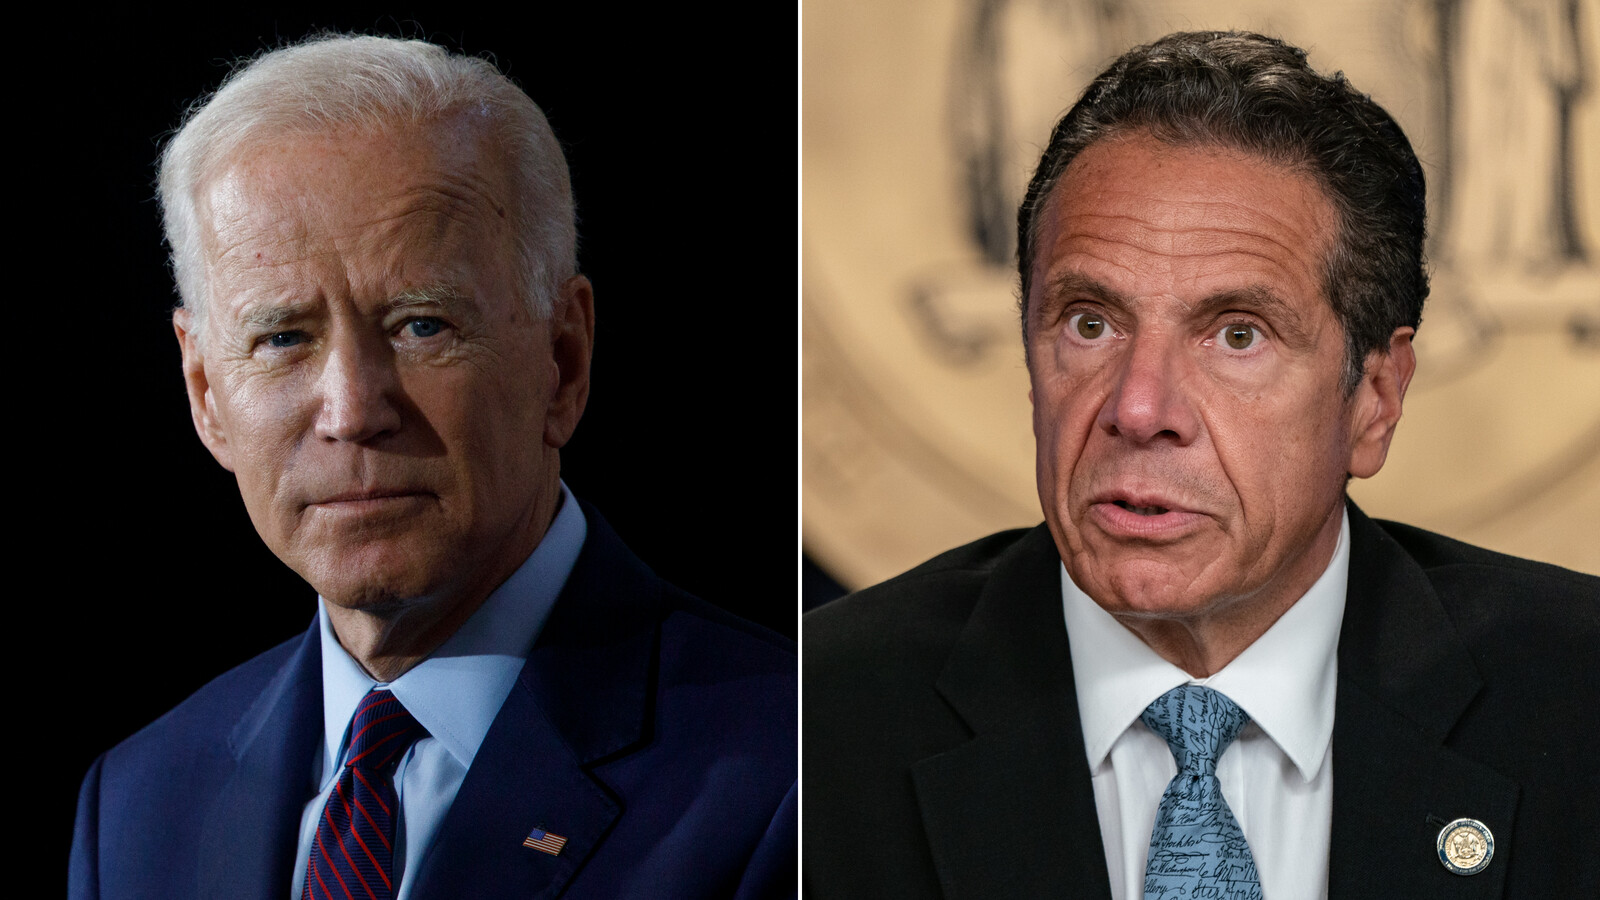 Biden calls on New York Gov. Andrew Cuomo to resign after report details sexual harassment allegations